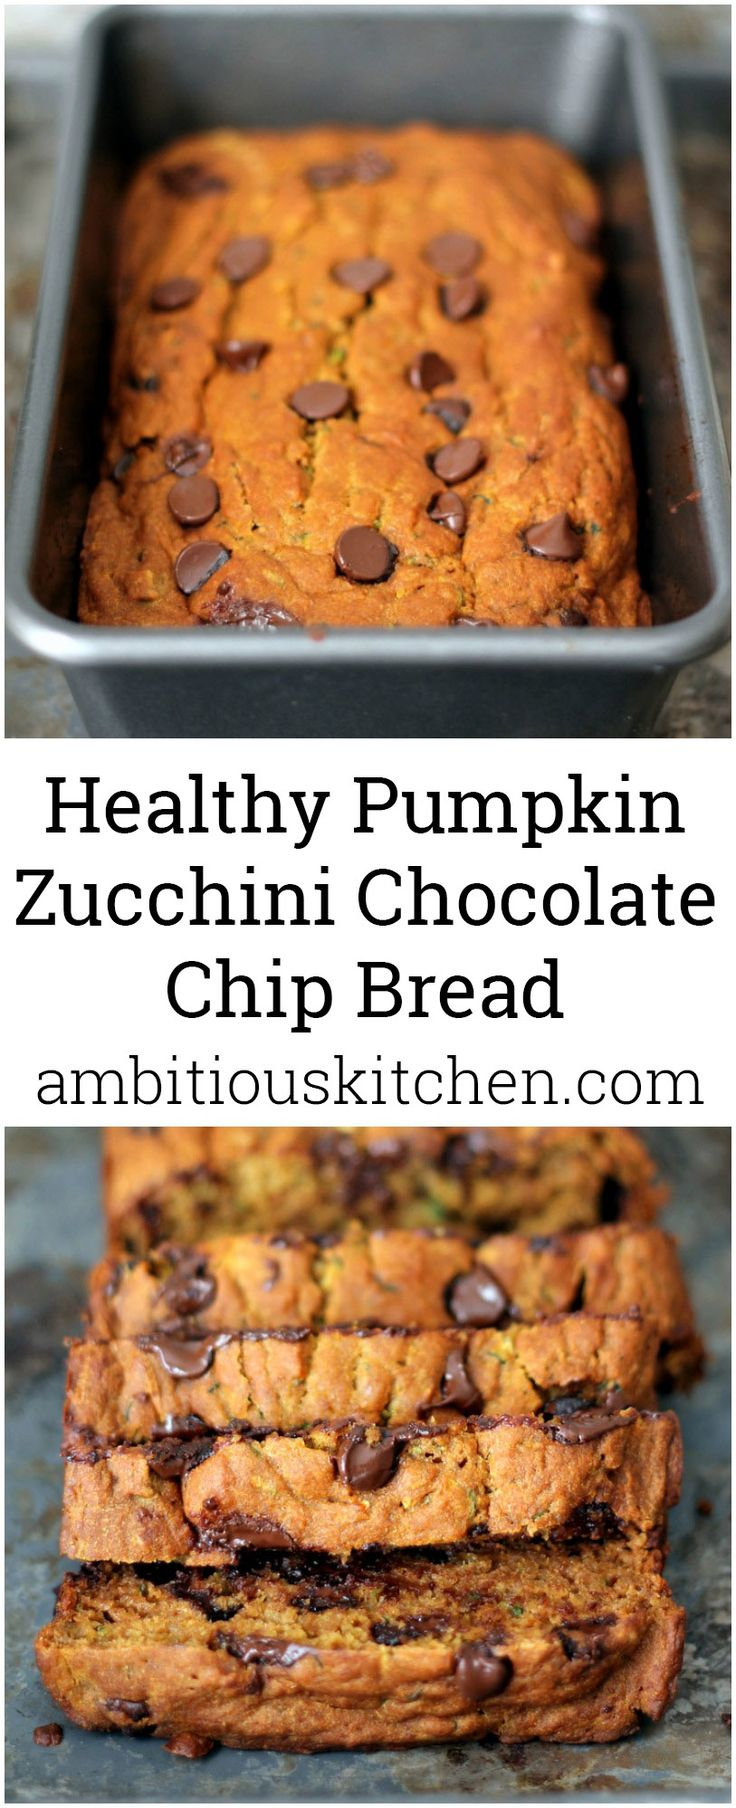 A delicious and moist low fat healthy pumpkin bread with zucchini and chocolate chips! This is amazing!